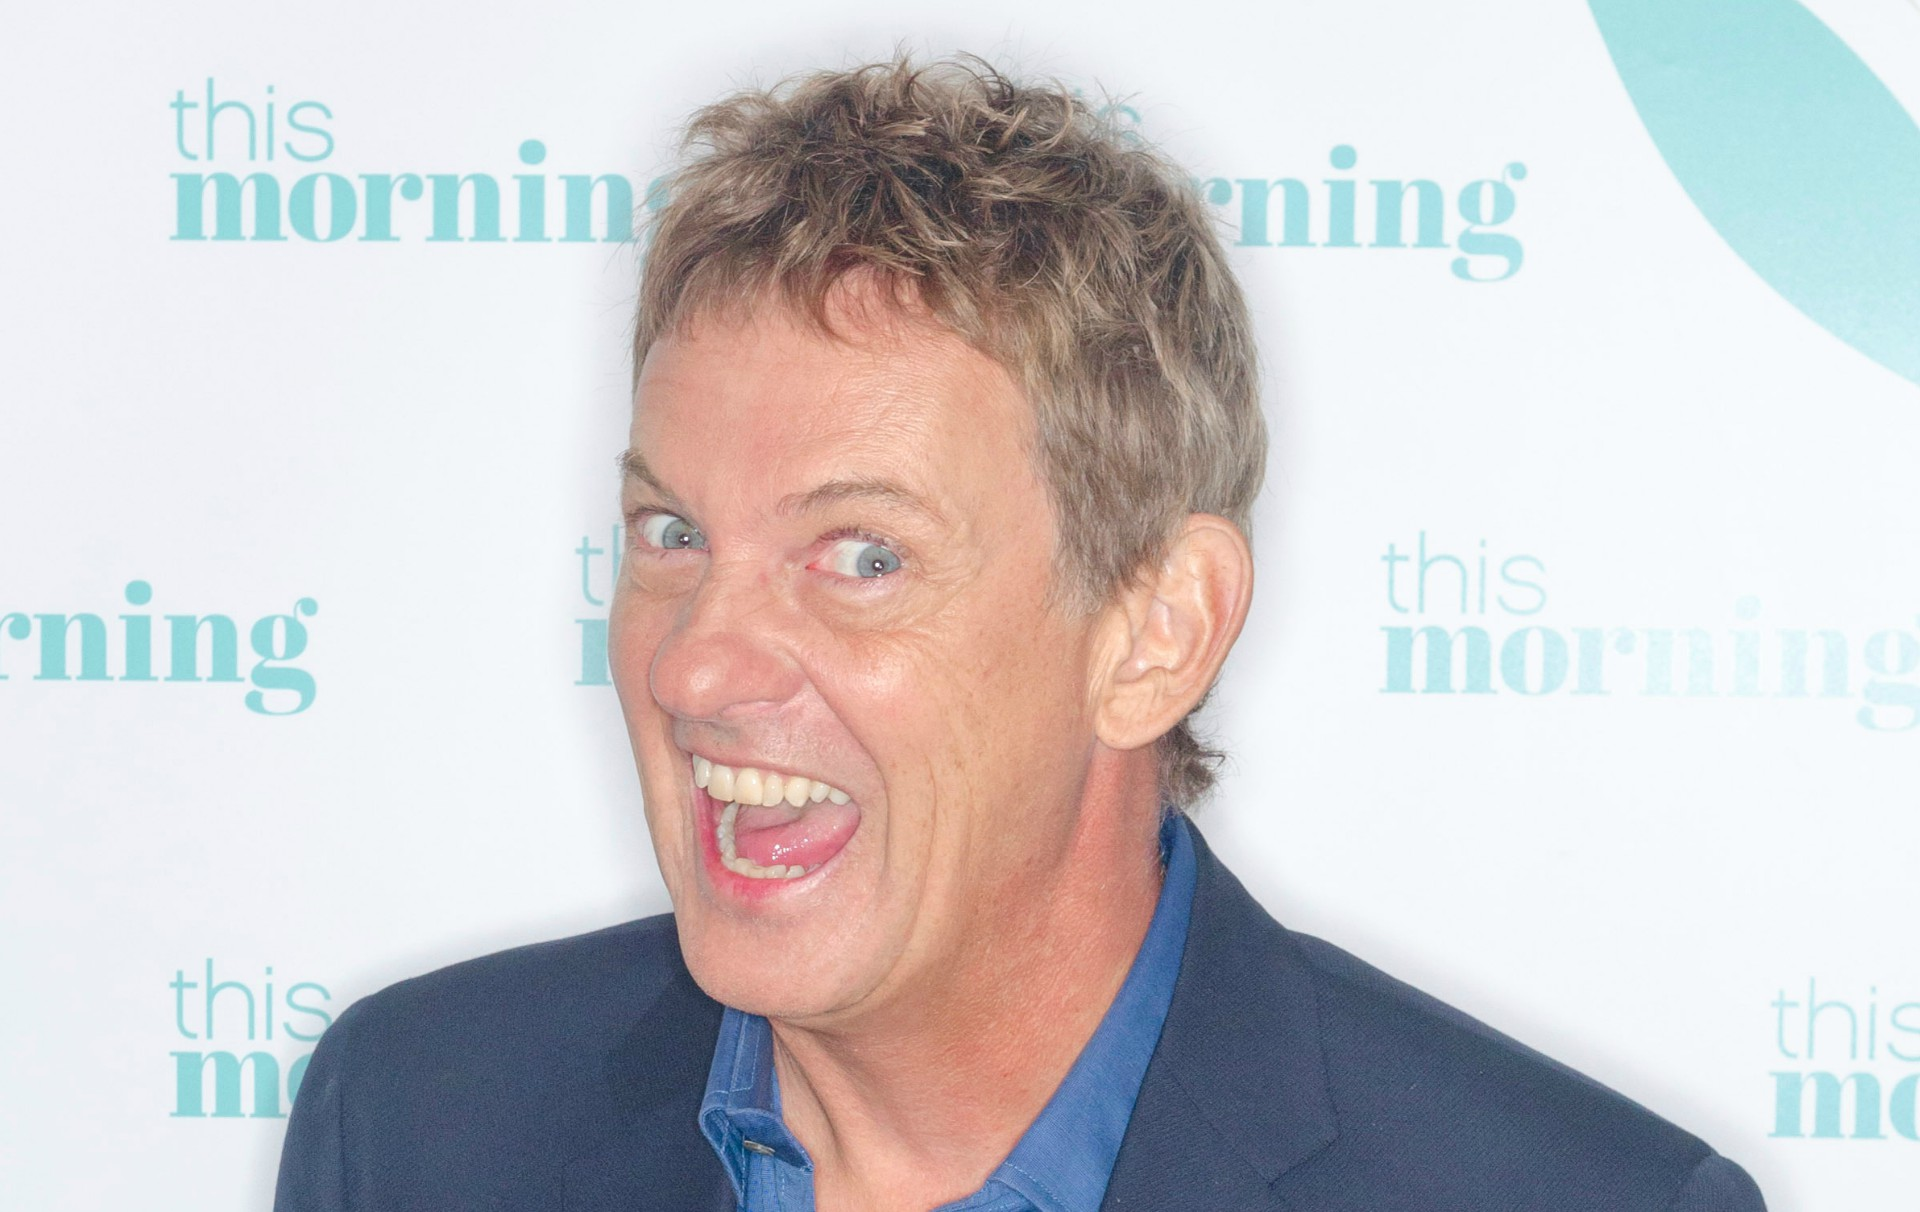 Matthew Wright to leave pregnant wife alone at Christmas